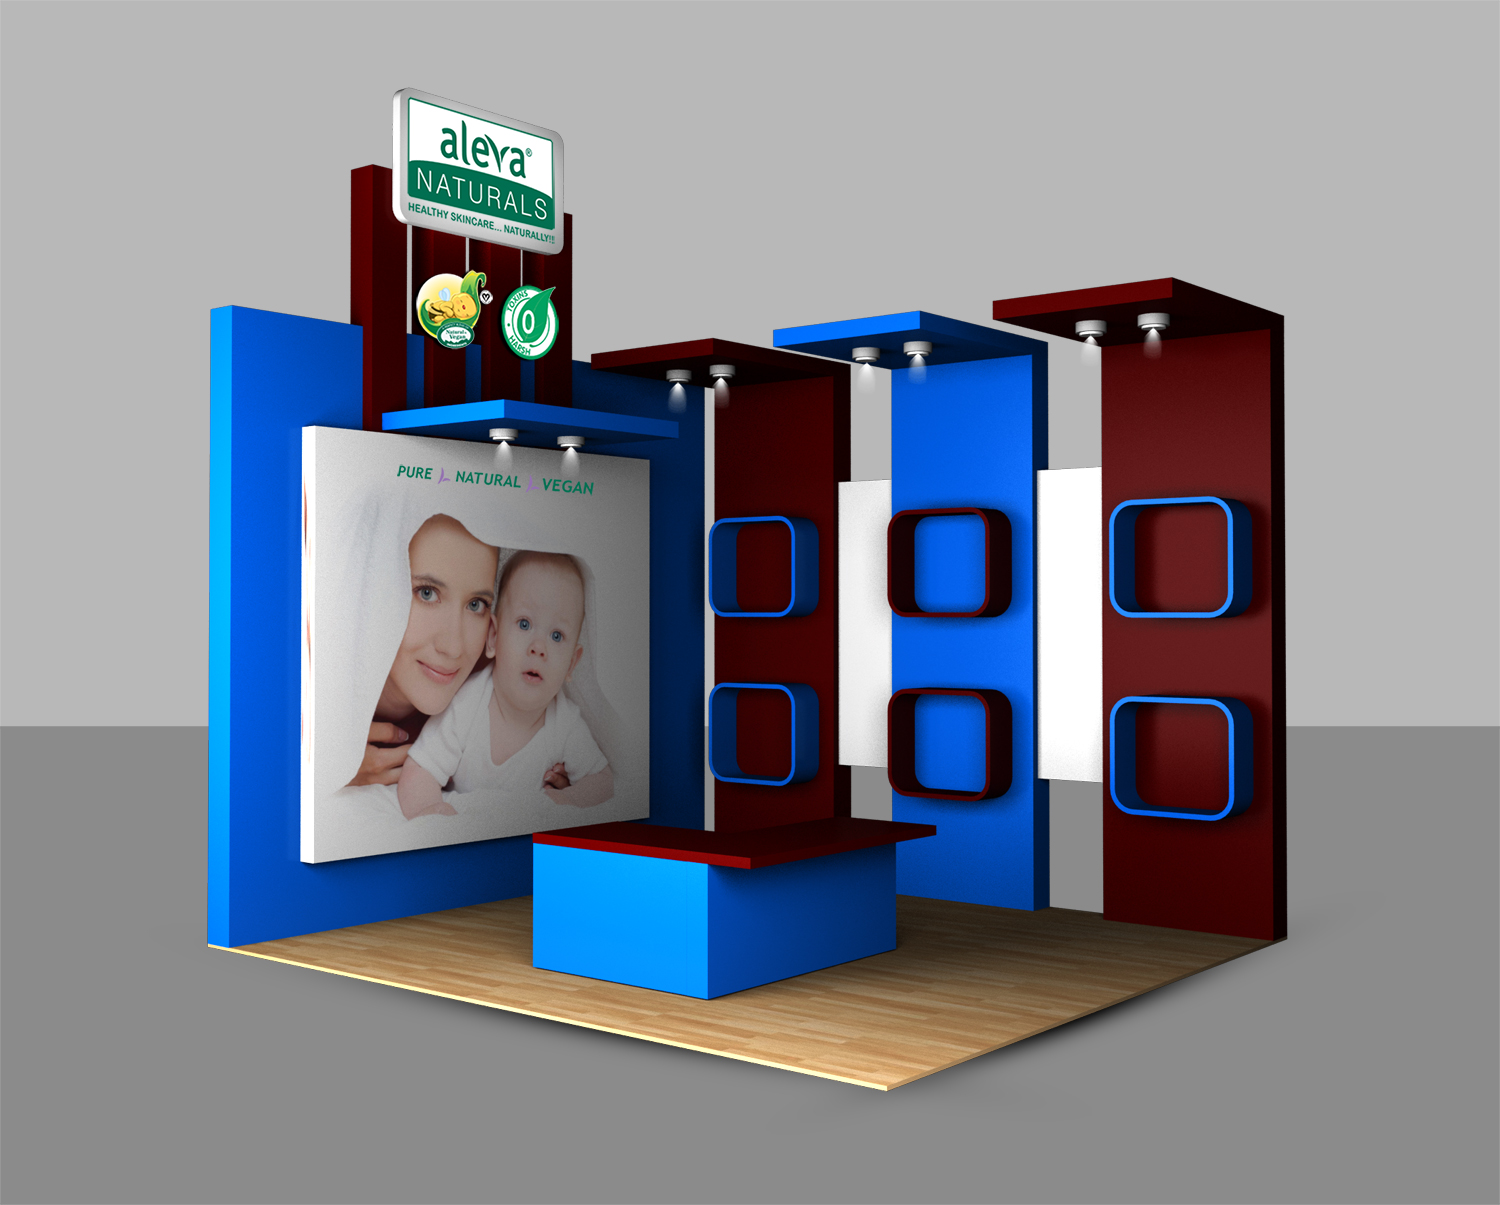 Modern Exhibition Booth Design : Elegant modern trade show booth design for tindy johal by